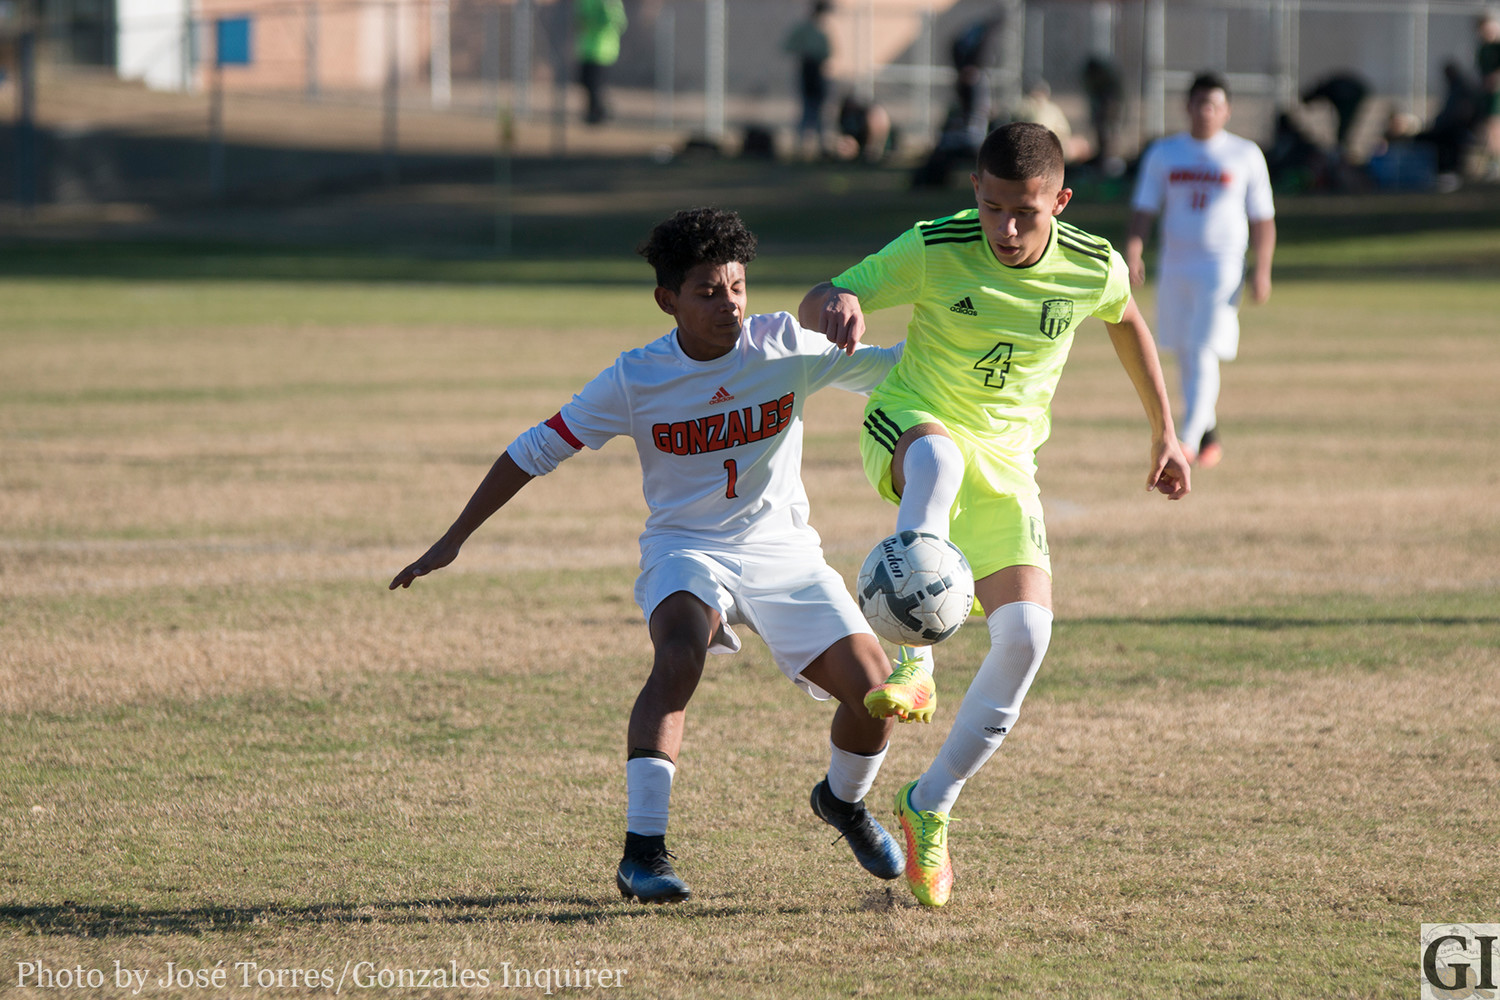 Anthony Veliz (1) was active in the tournament, scoring five of the team's 12 goals as the Apaches won one game and lost two last weekend in Pleasanton.